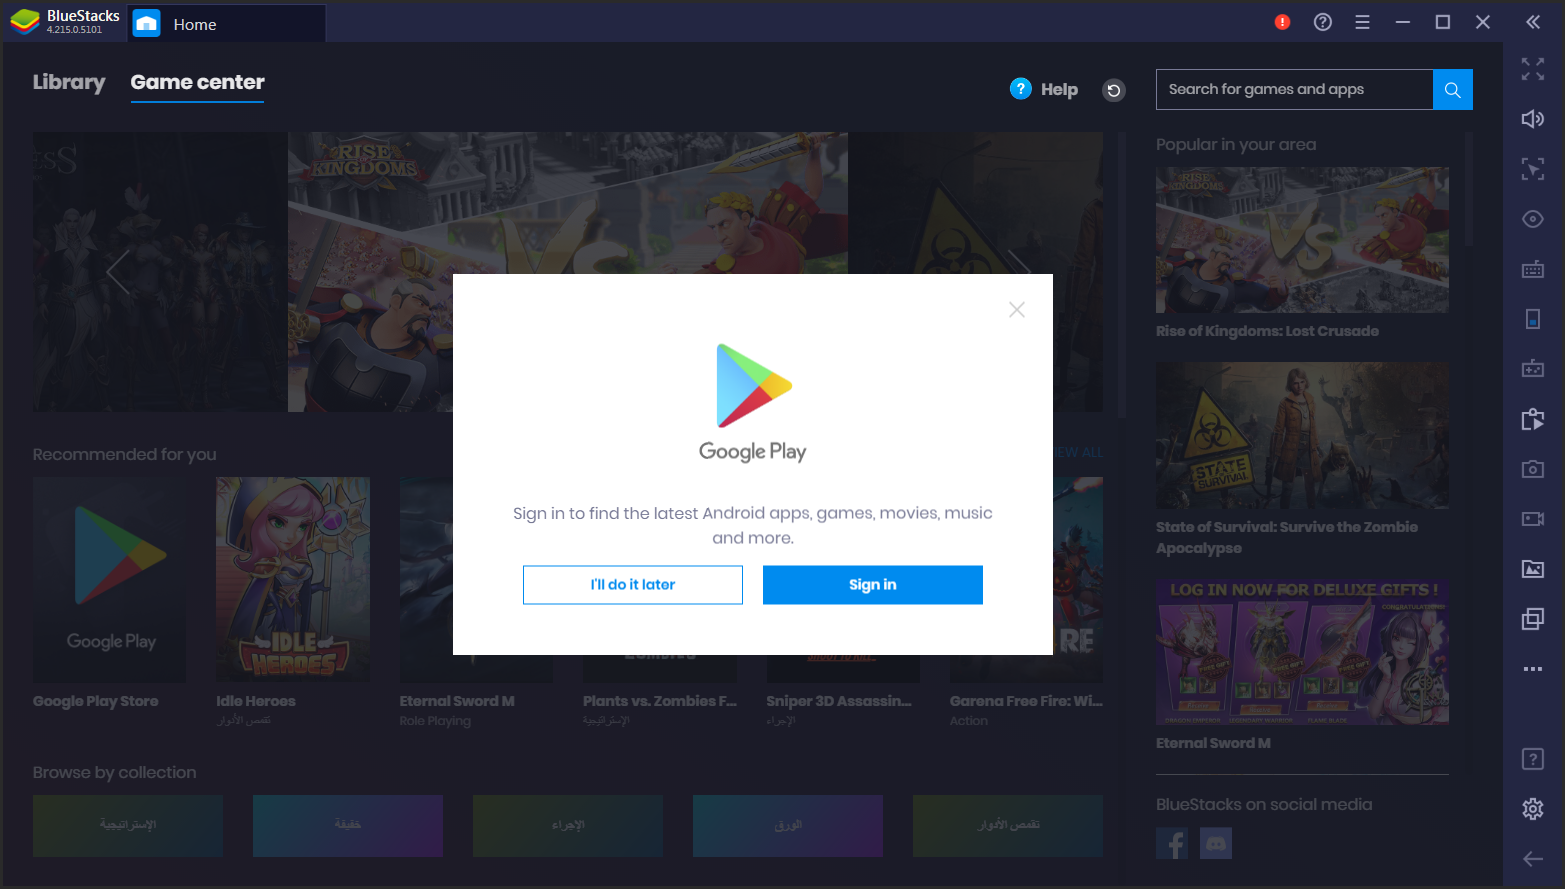 BlueStacks App Player 4.230.0.1103